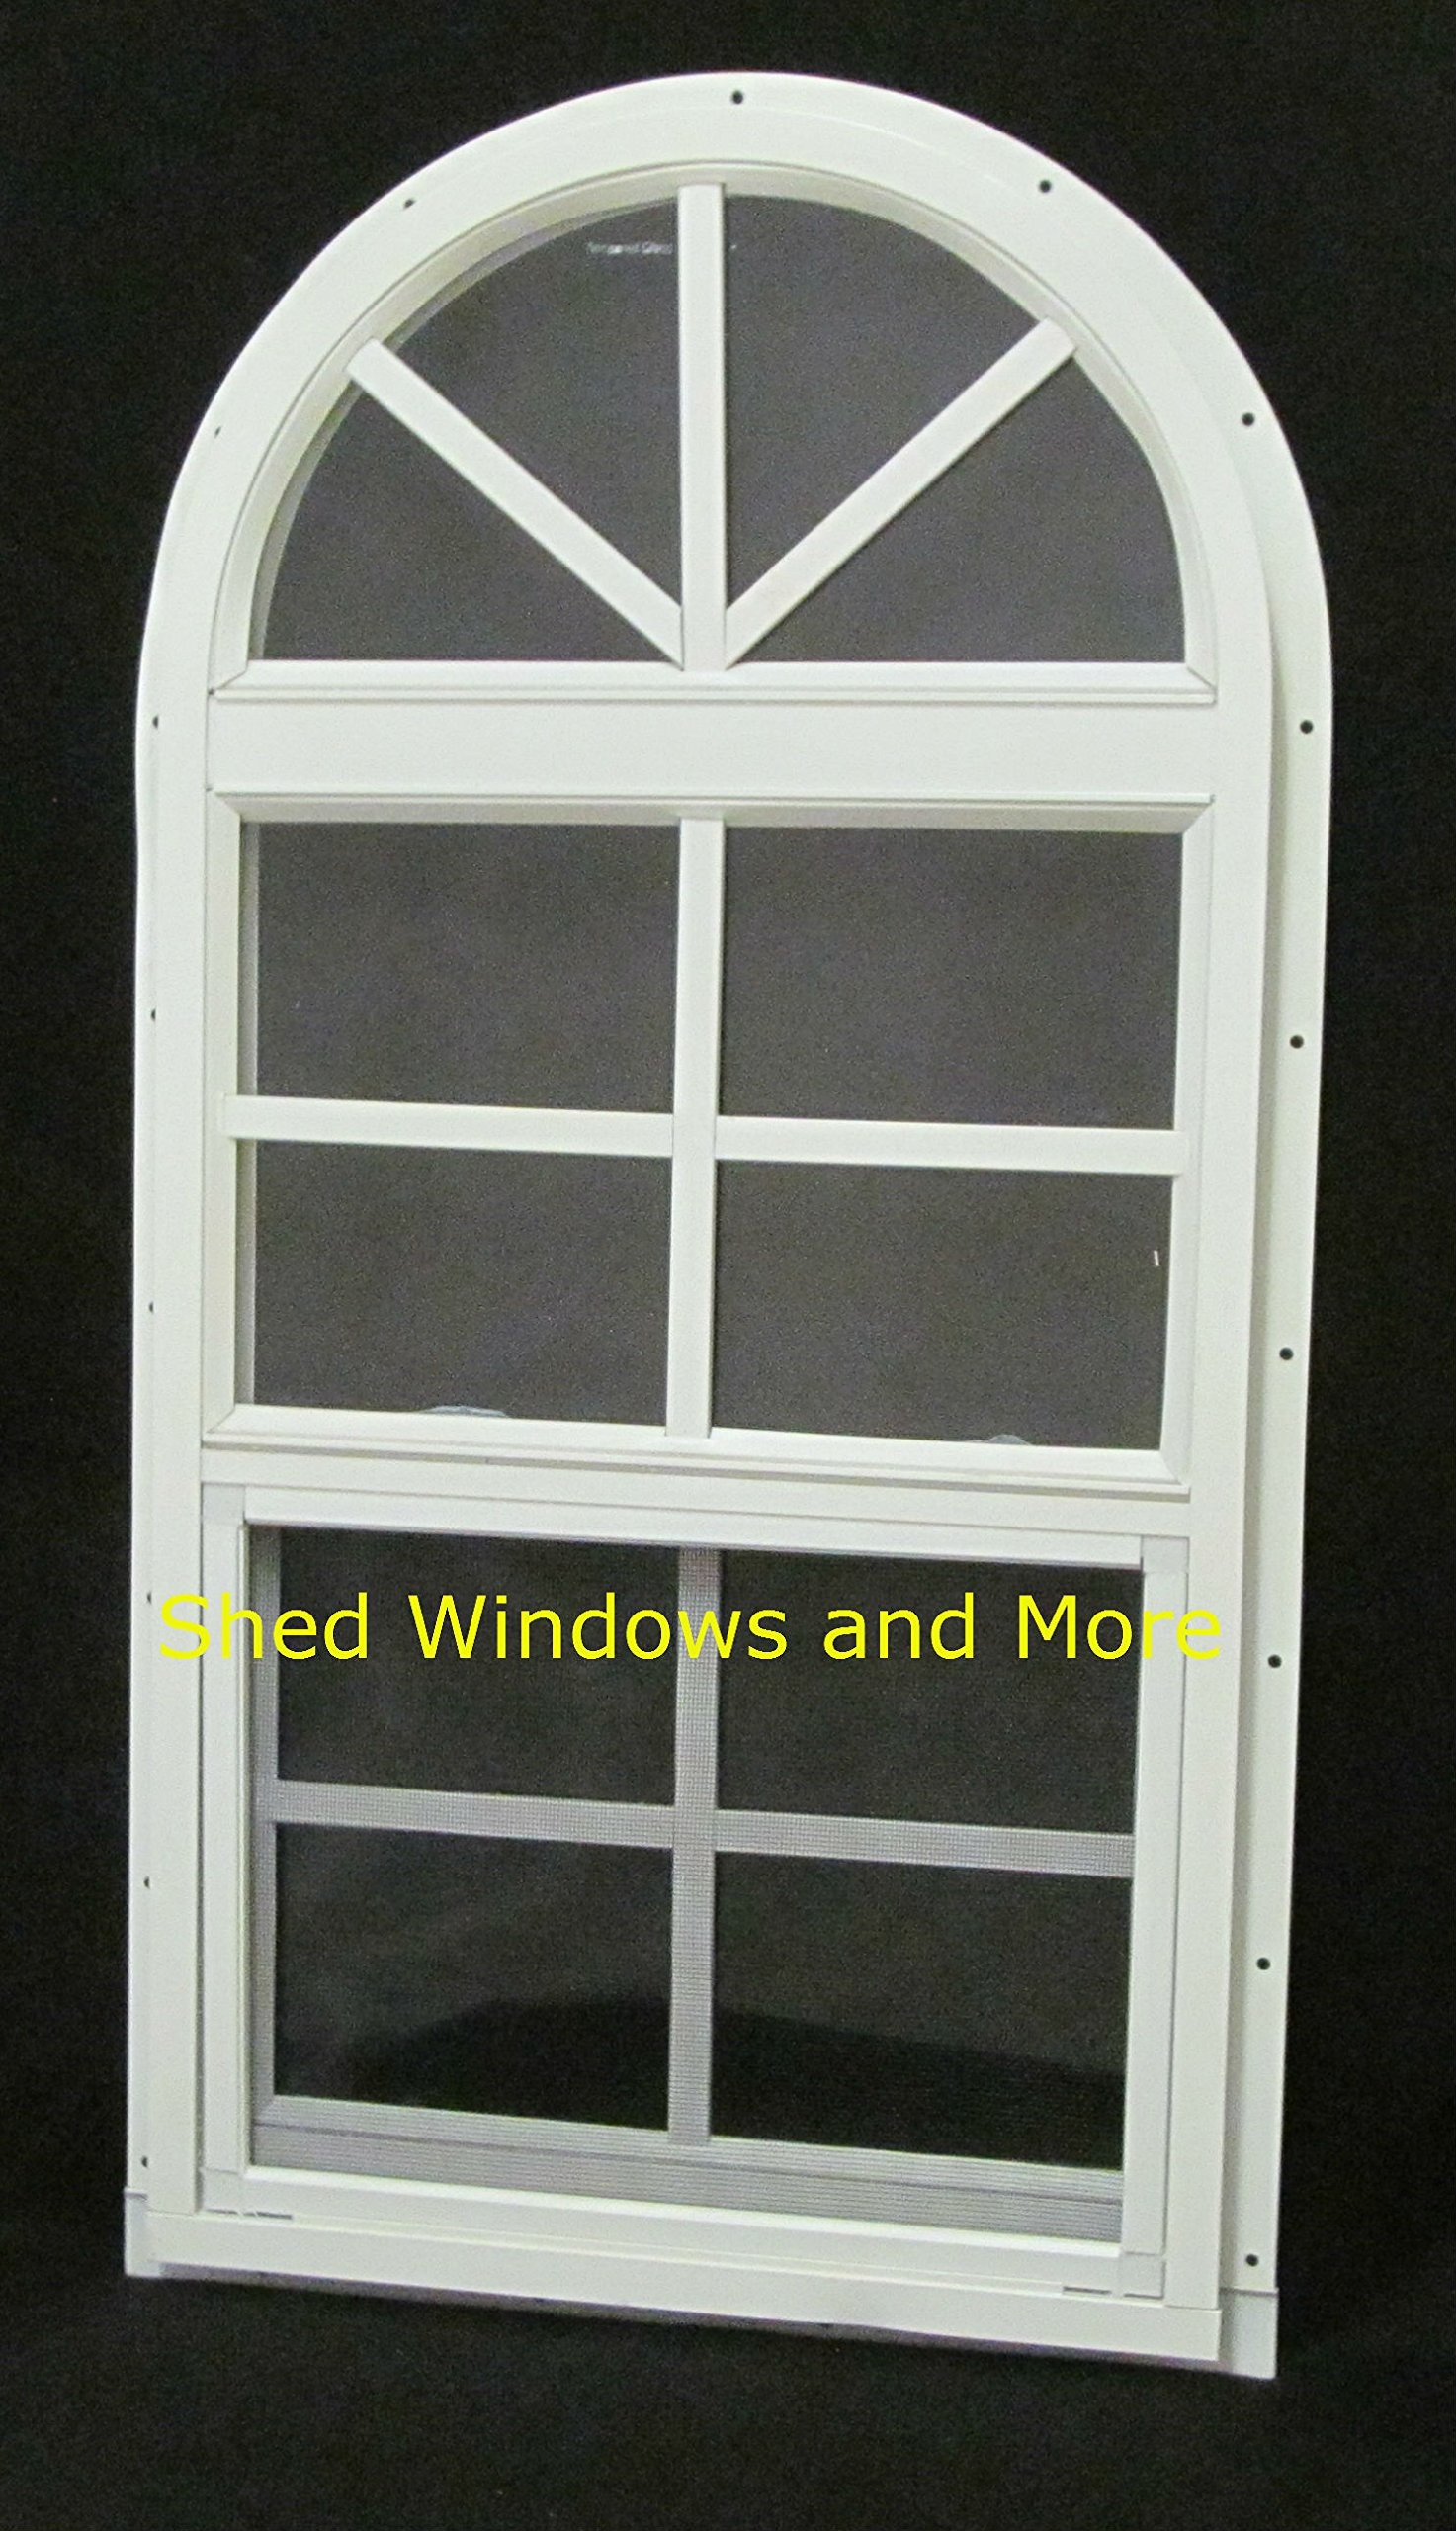 Arched Shed Playhouse Windows 14 X 28 White J-Channel, Safety Glass Aluminum Frame